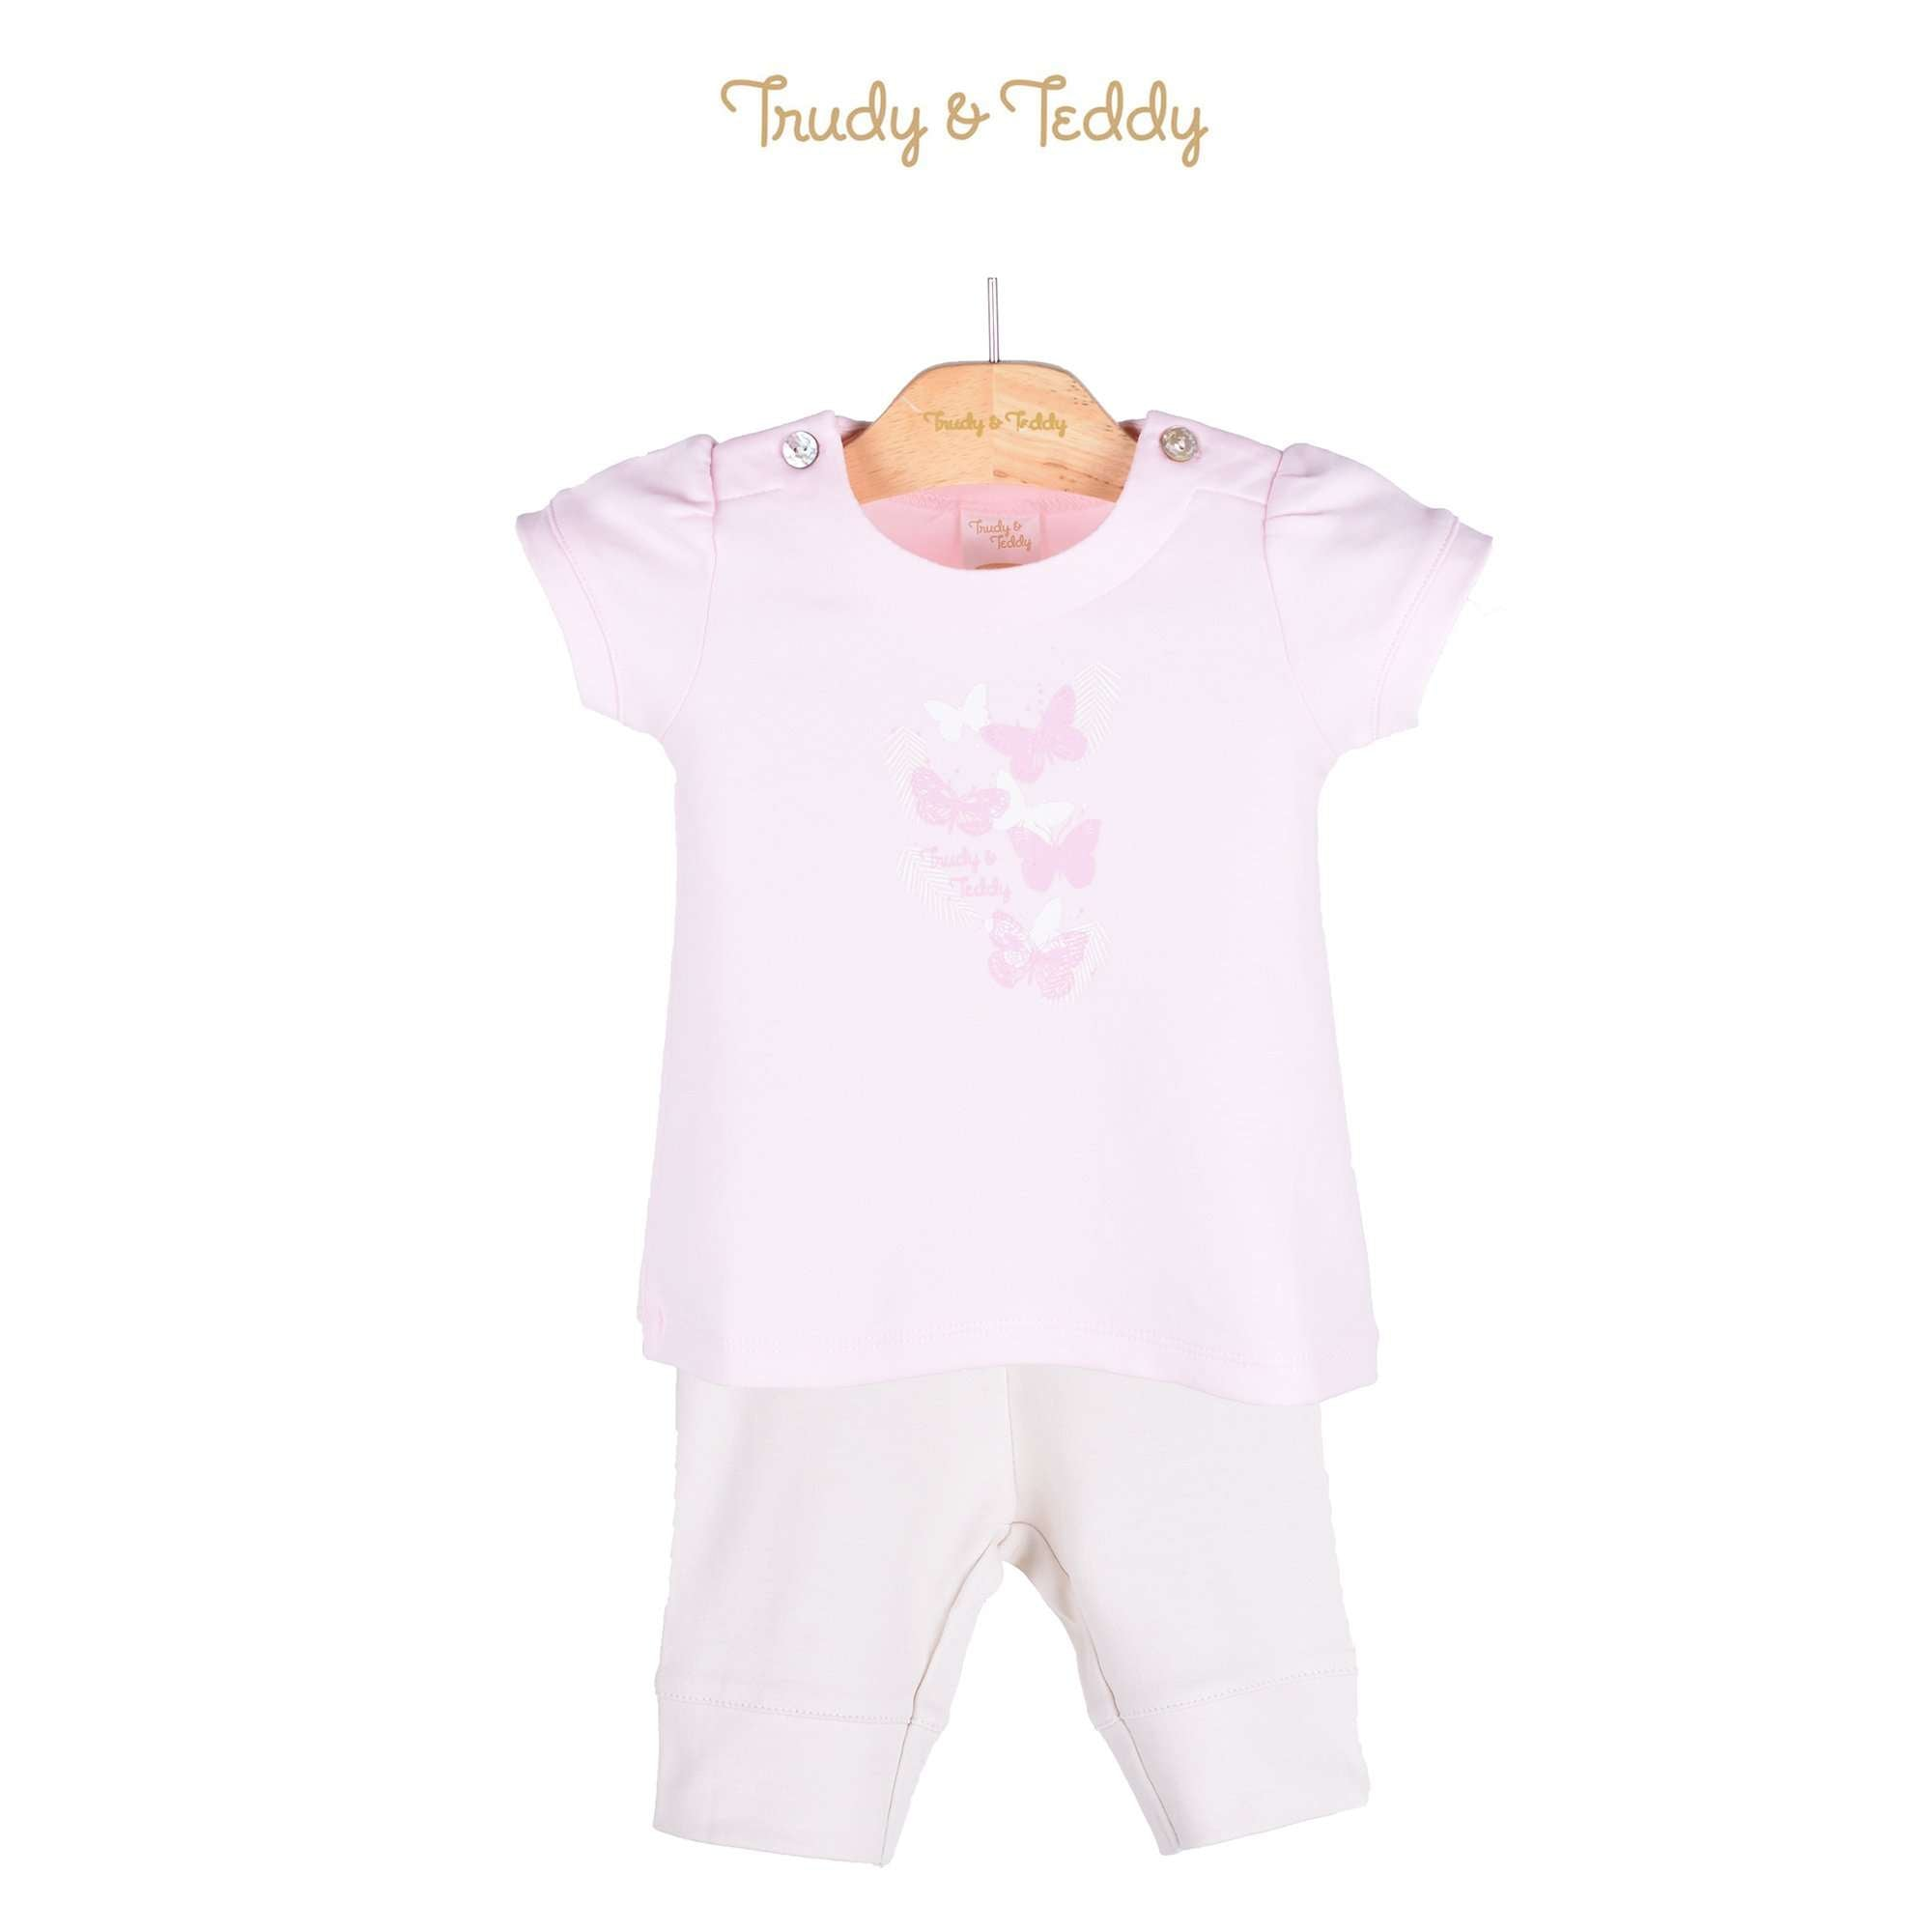 Trudy & Teddy Baby Girl Short Sleeve Bermuda Suit 820028-412 : Buy Trudy & Teddy online at CMG.MY